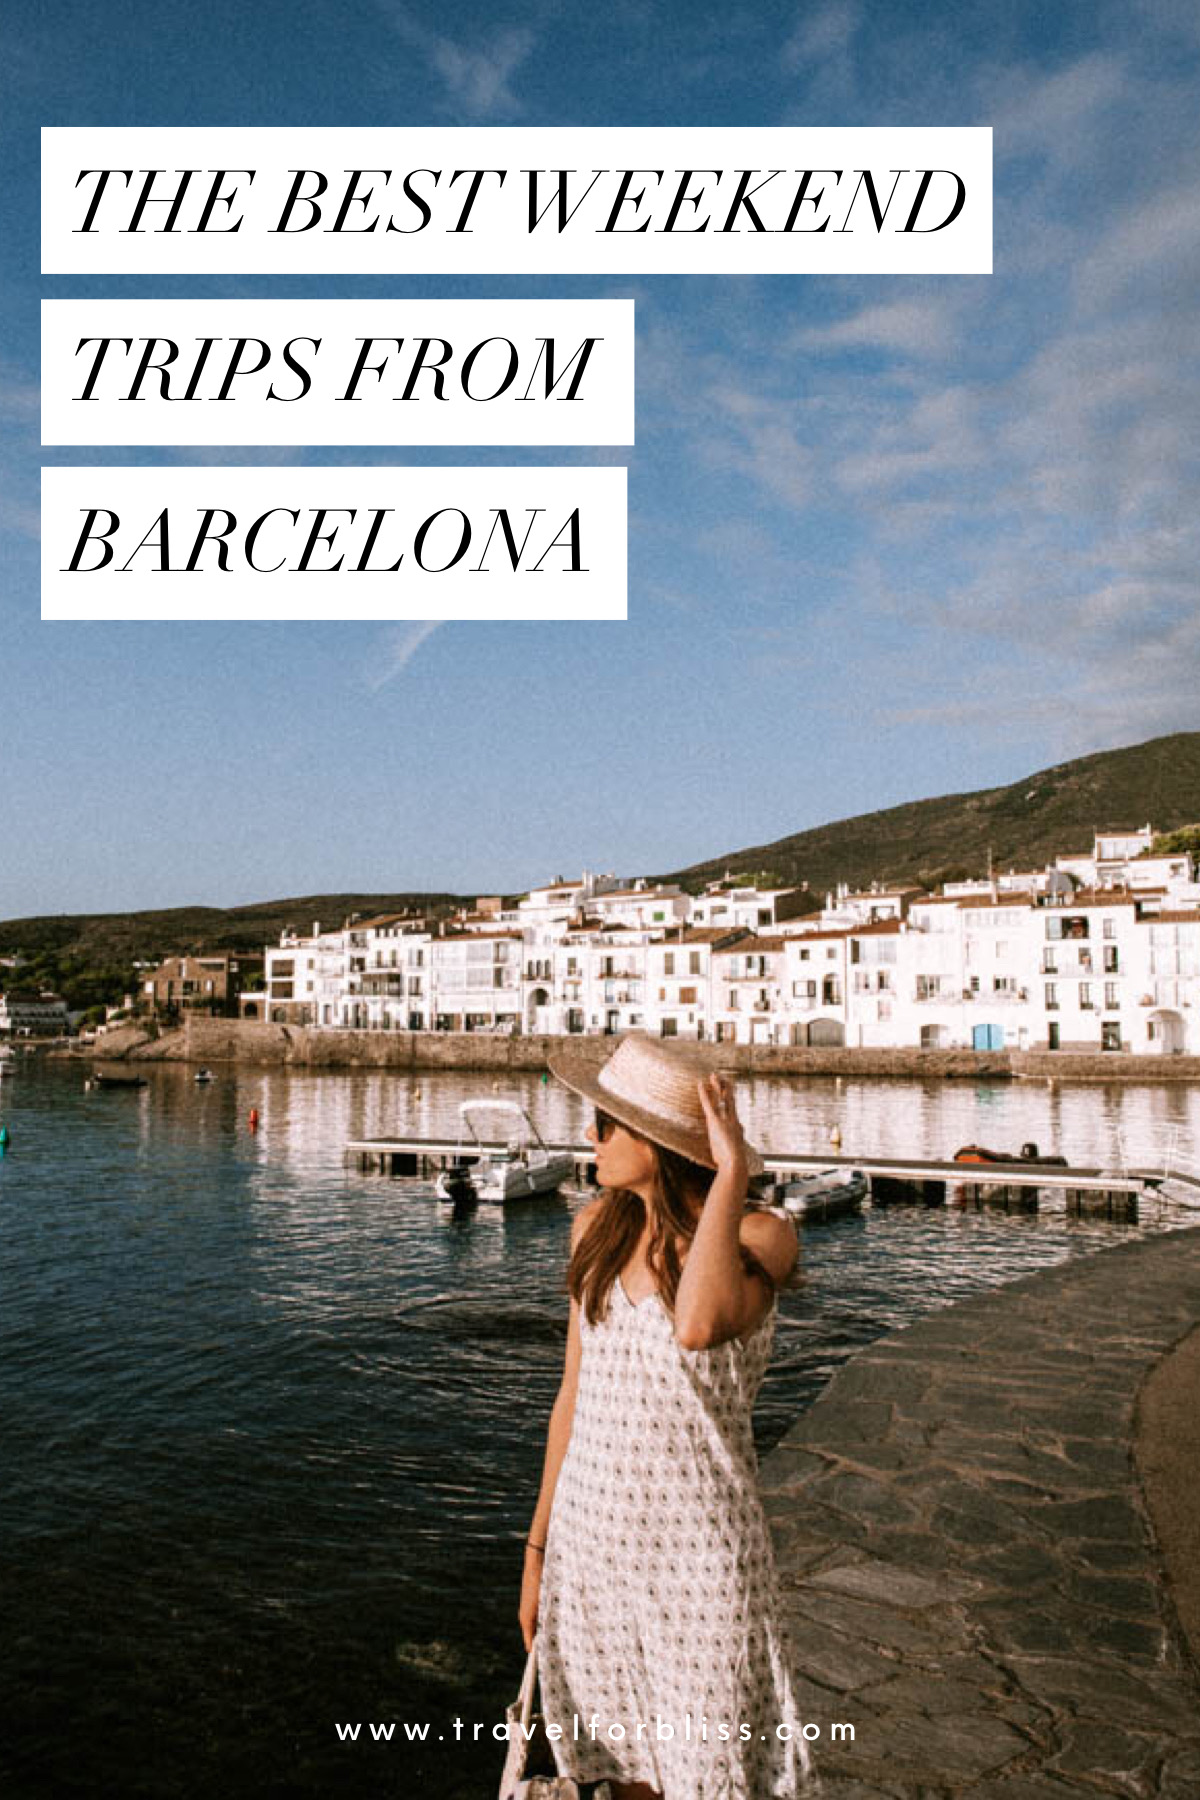 The Best Weekend trips from Barcelona